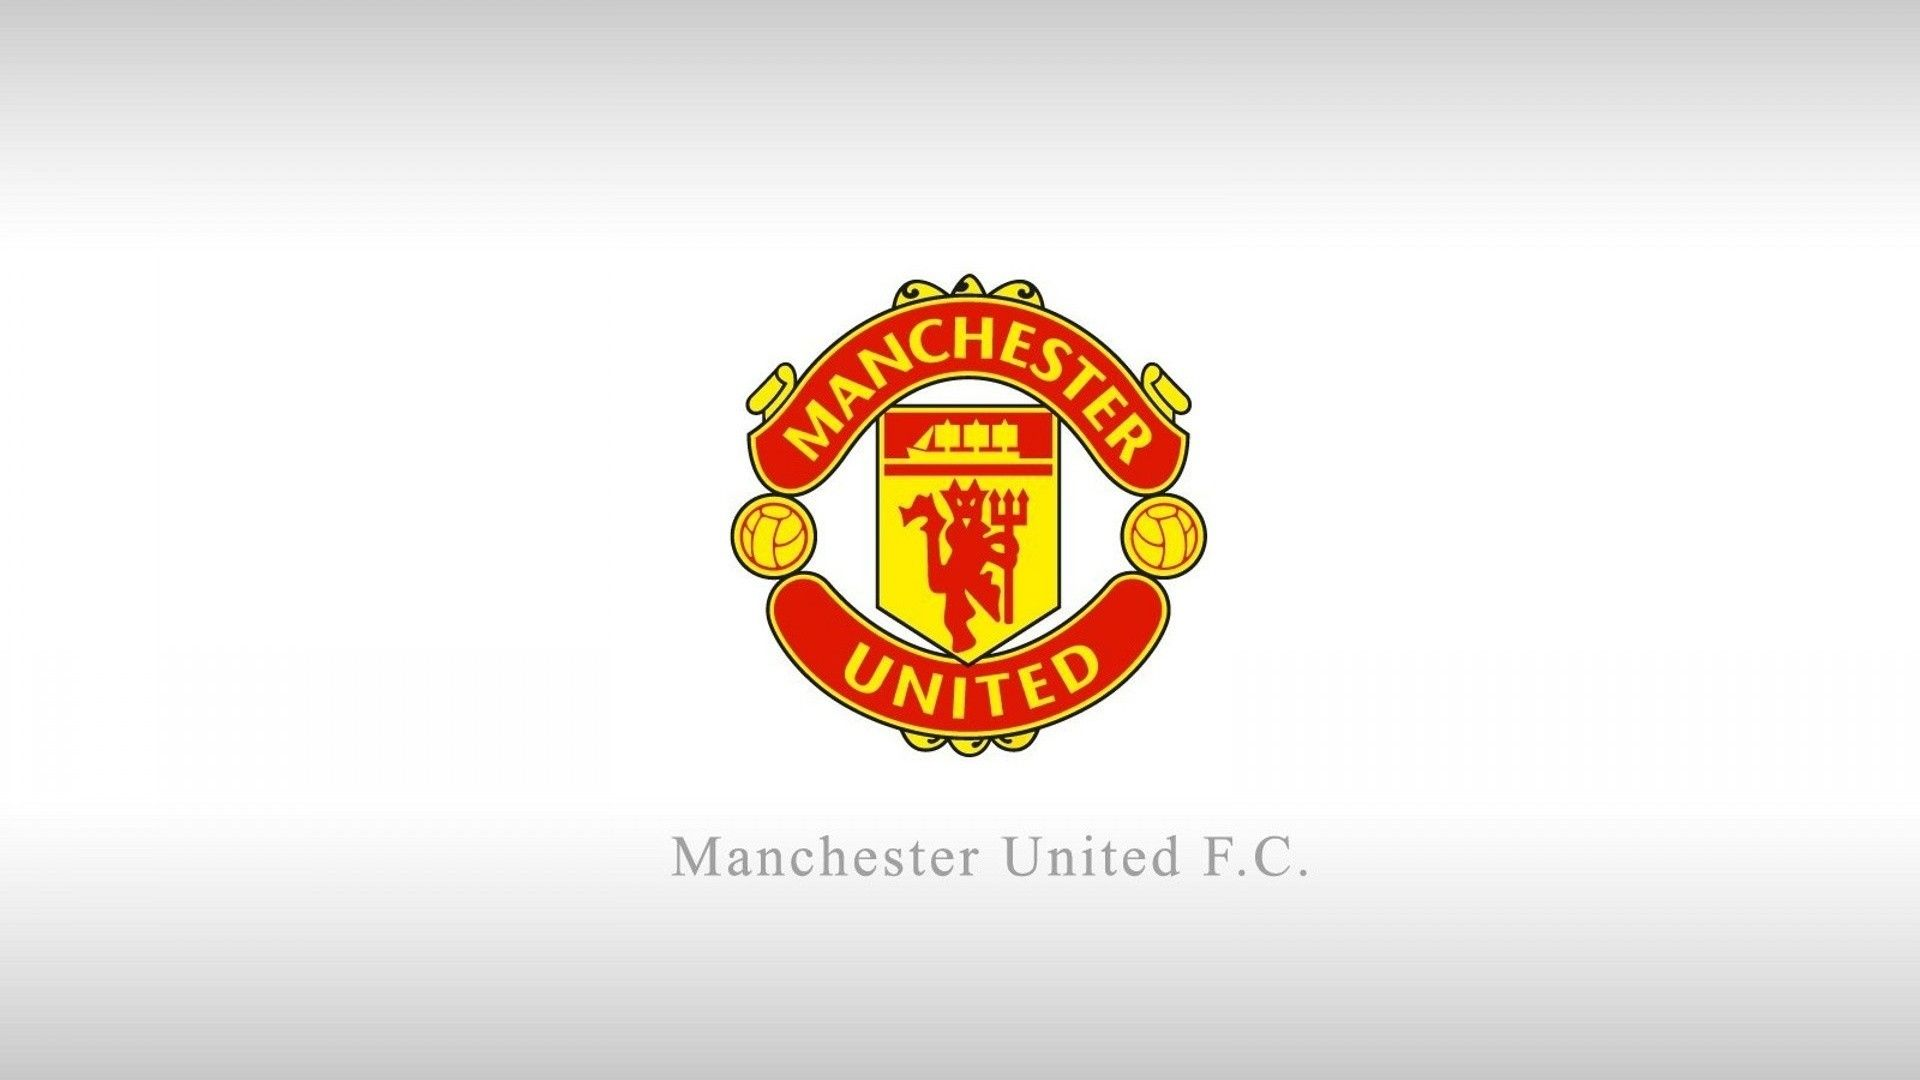 Manchester United Hd Wallpapers Best Football Wallpaper Hd Manchester United Wallpaper Manchester United Logo Manchester United